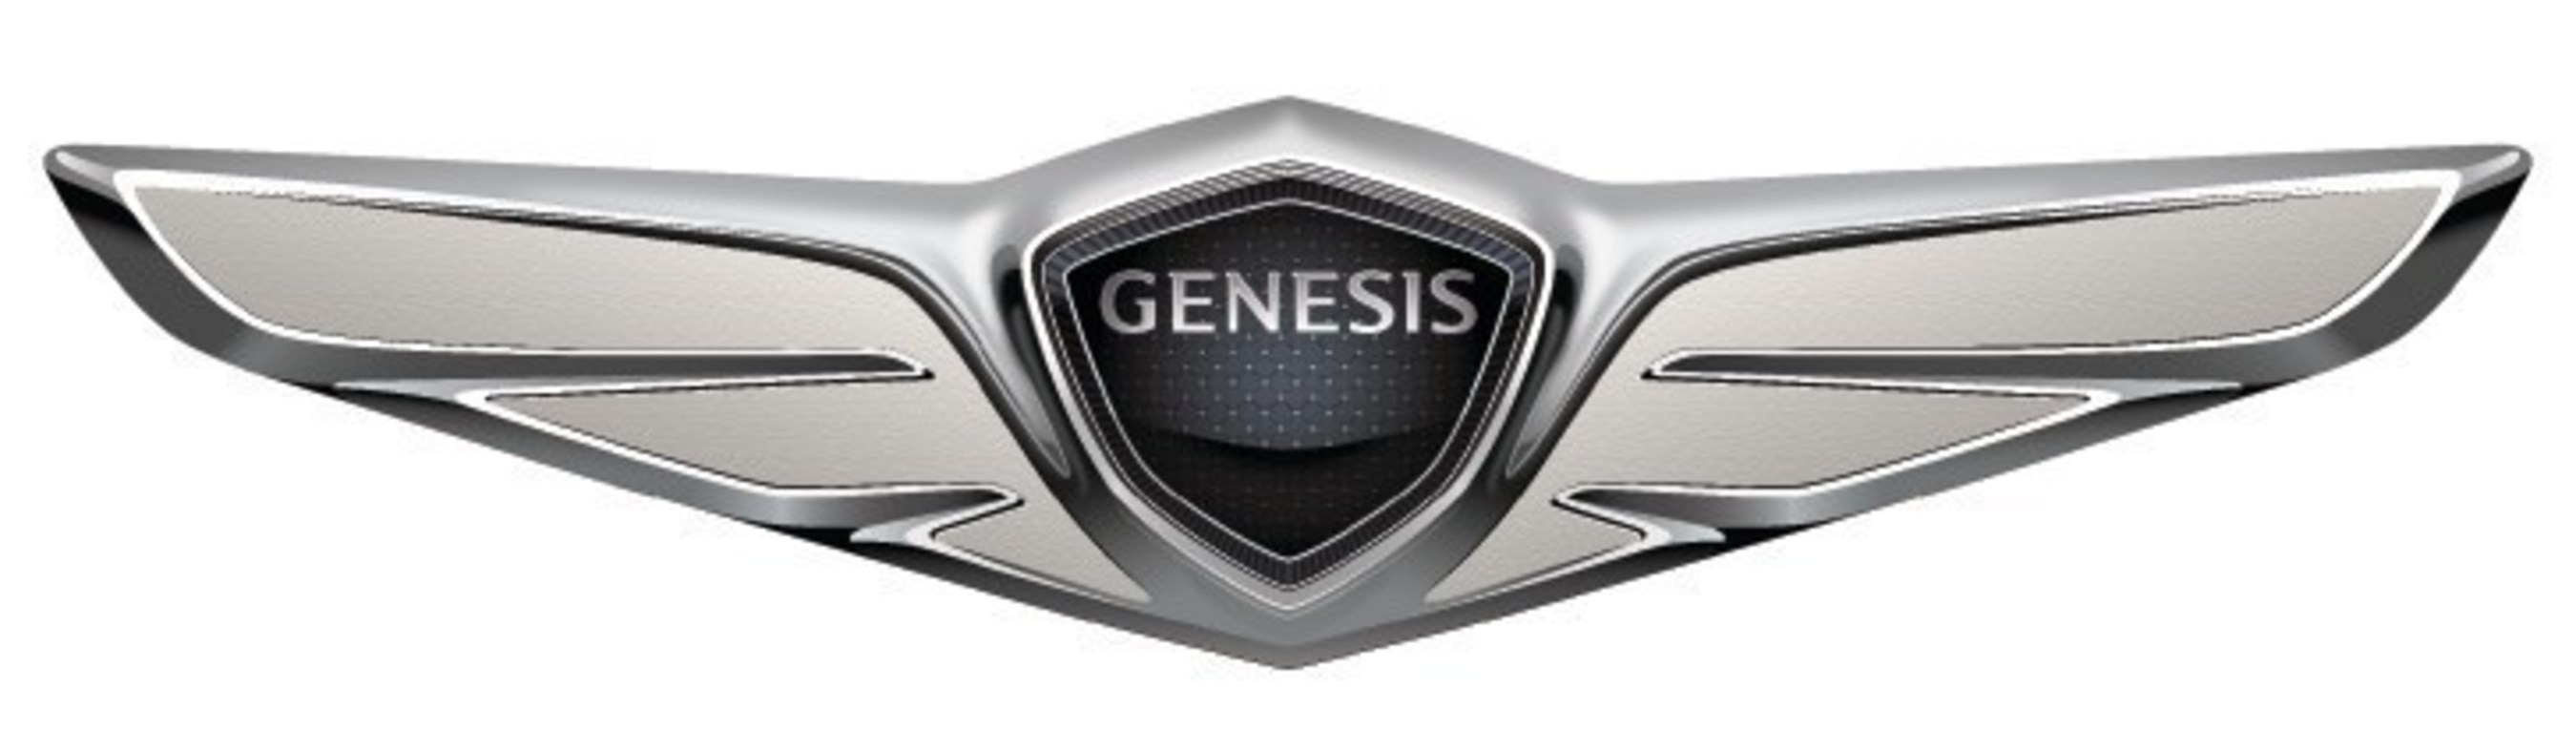 Genesis Car Logo >> Genesis Teams Up With Amazon To Bring Connected Cars To